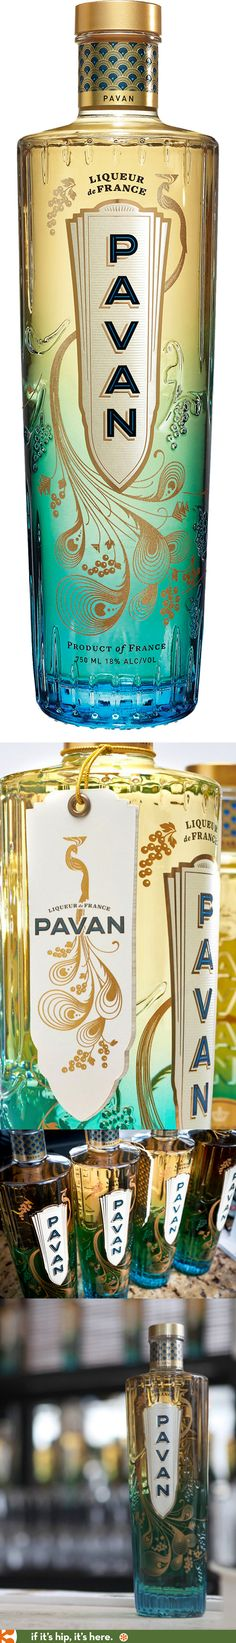 Pavan Liqueur's peacock-inspired bottle is one of the prettiest I've ever seen.